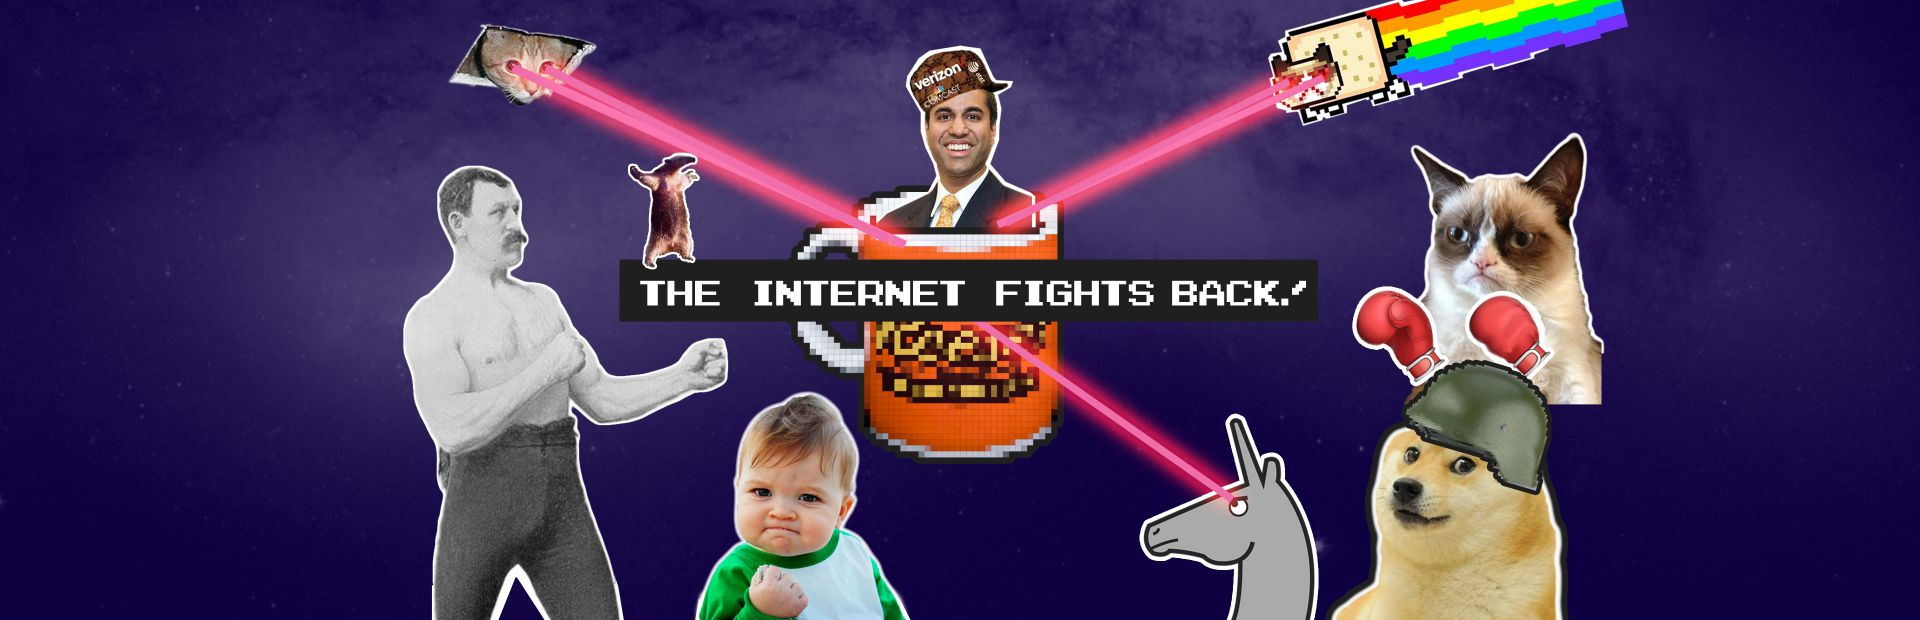 Net Neutrality: The Internet Fights Back​